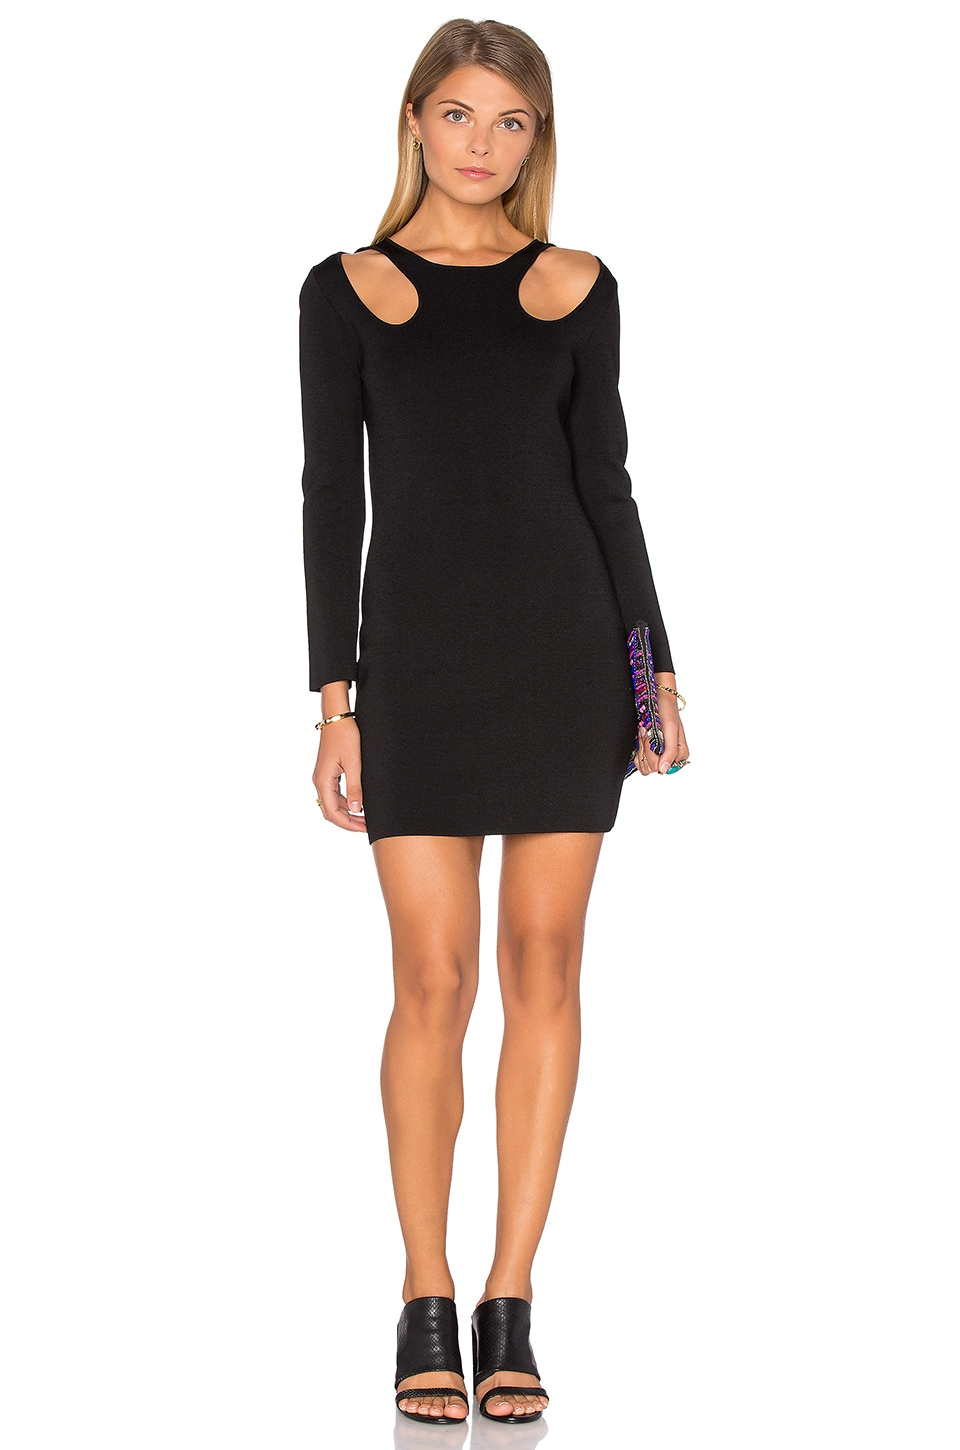 3/4 Sleeve Bodycon Dress by Endless Rose